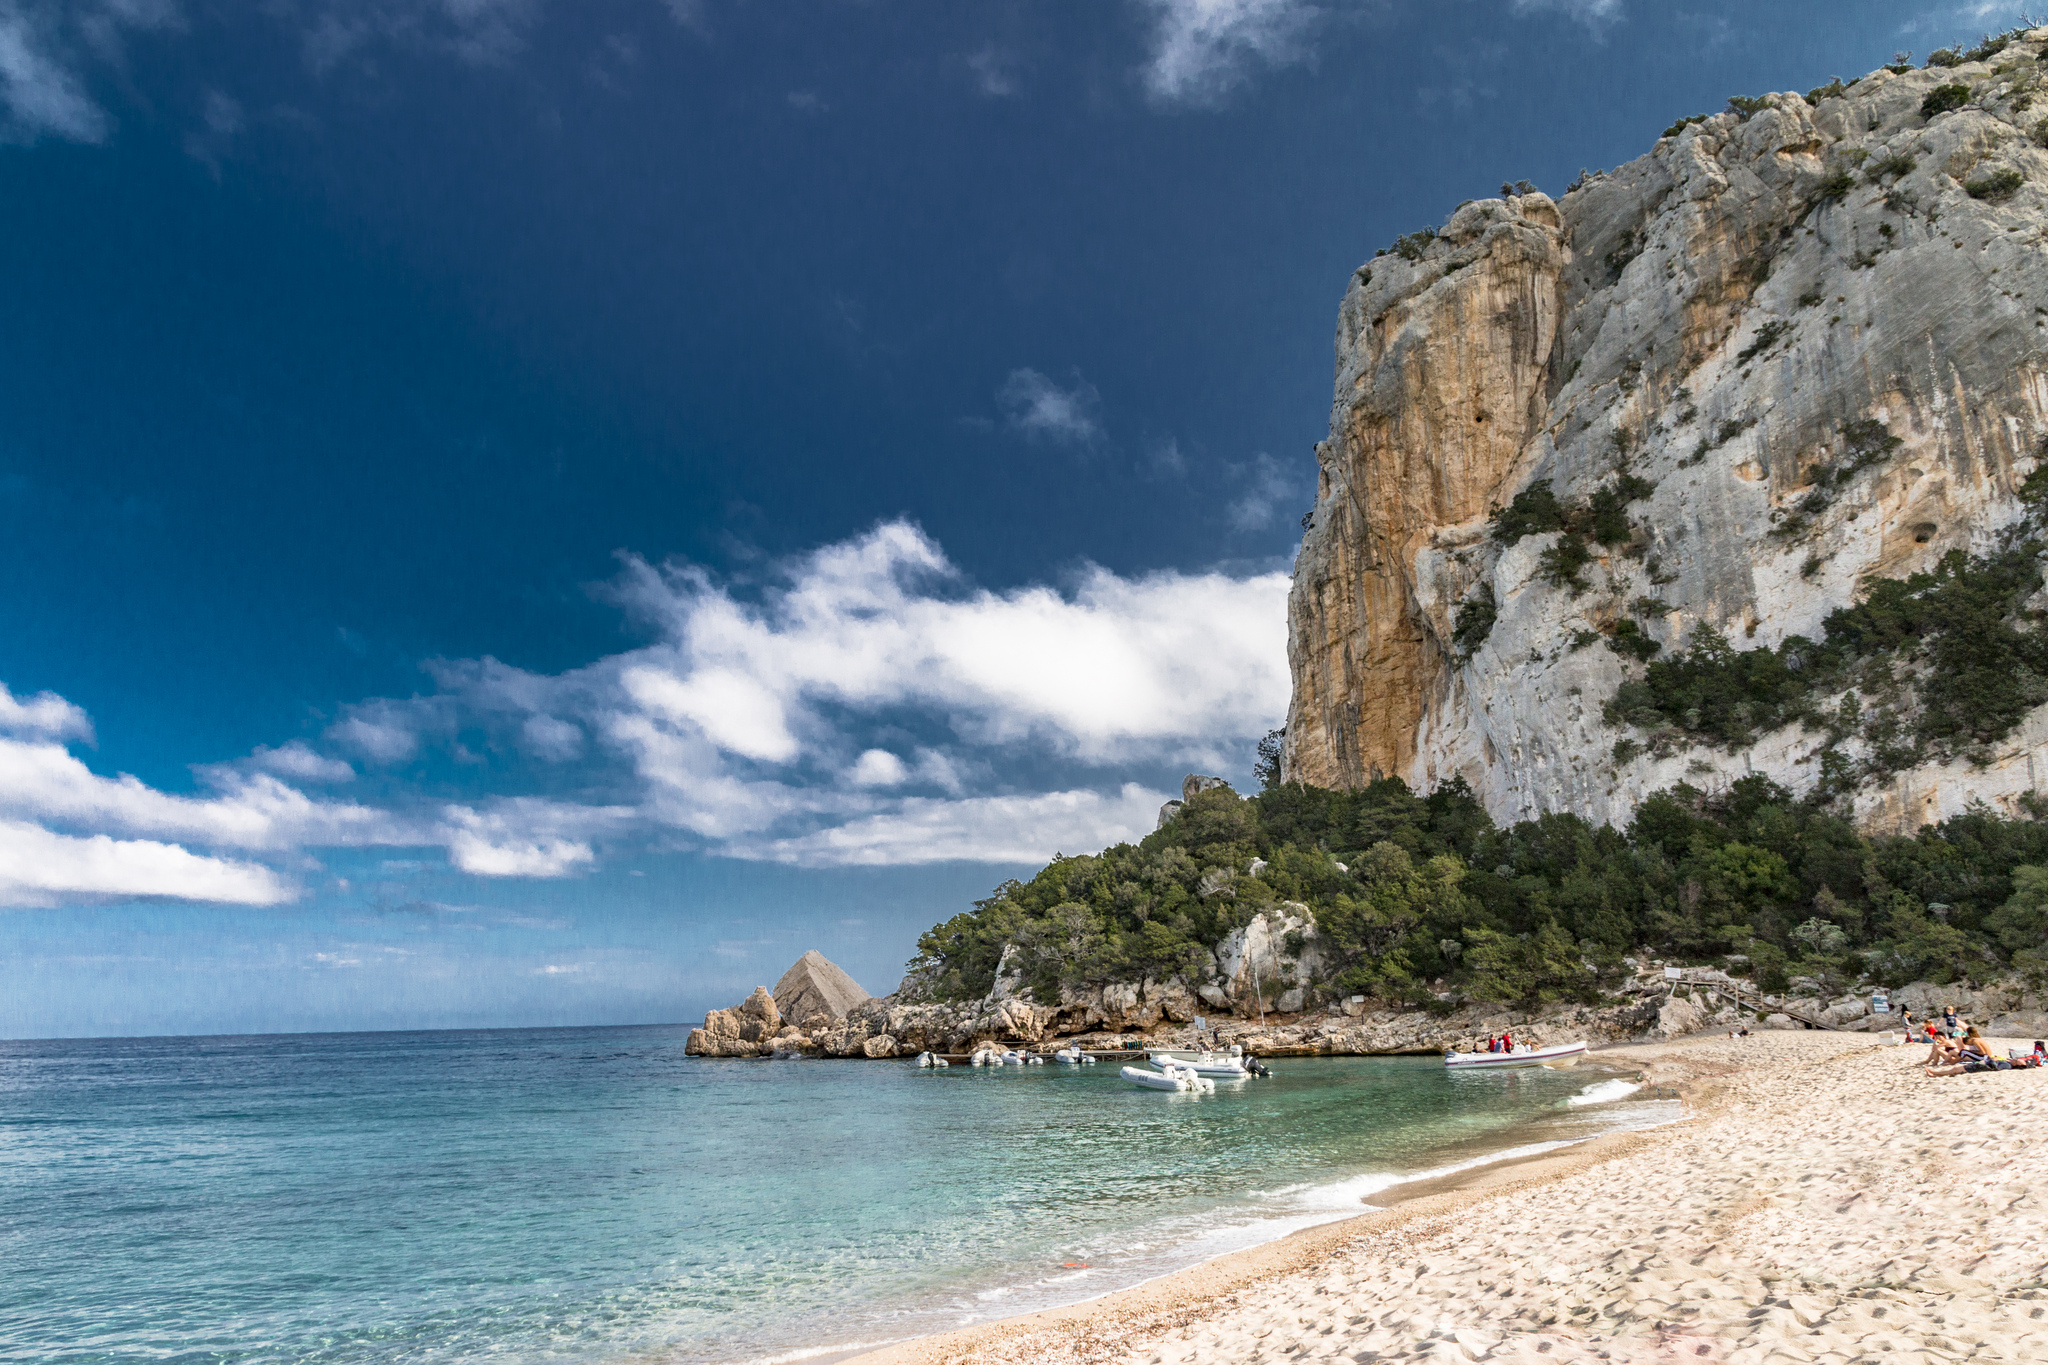 Cala Luna, a beach near our Italian villas.